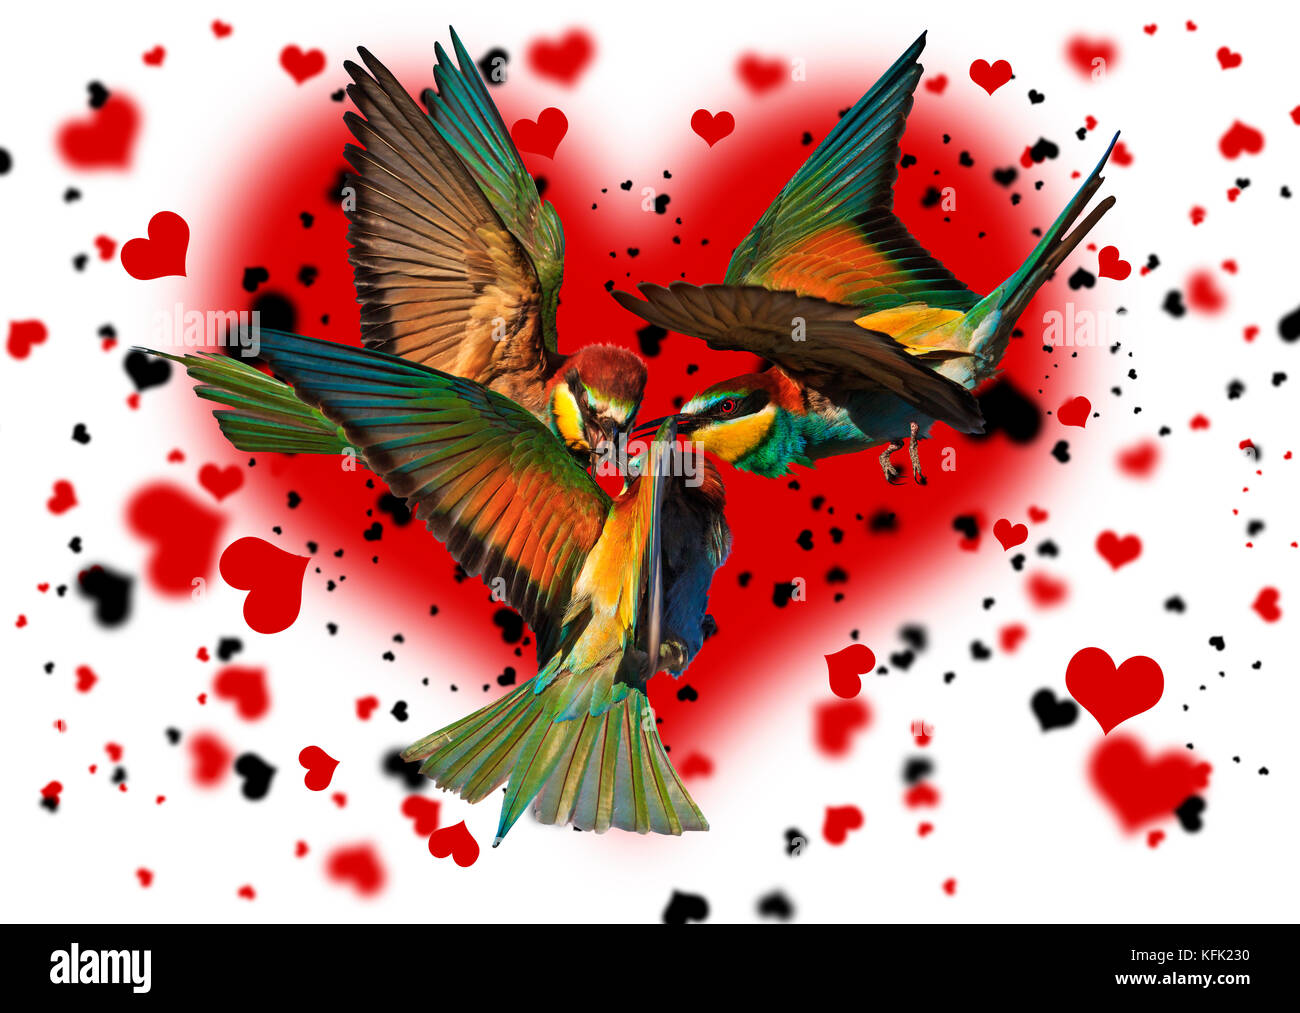 love triangle bird against the background of the hearts - Stock Image